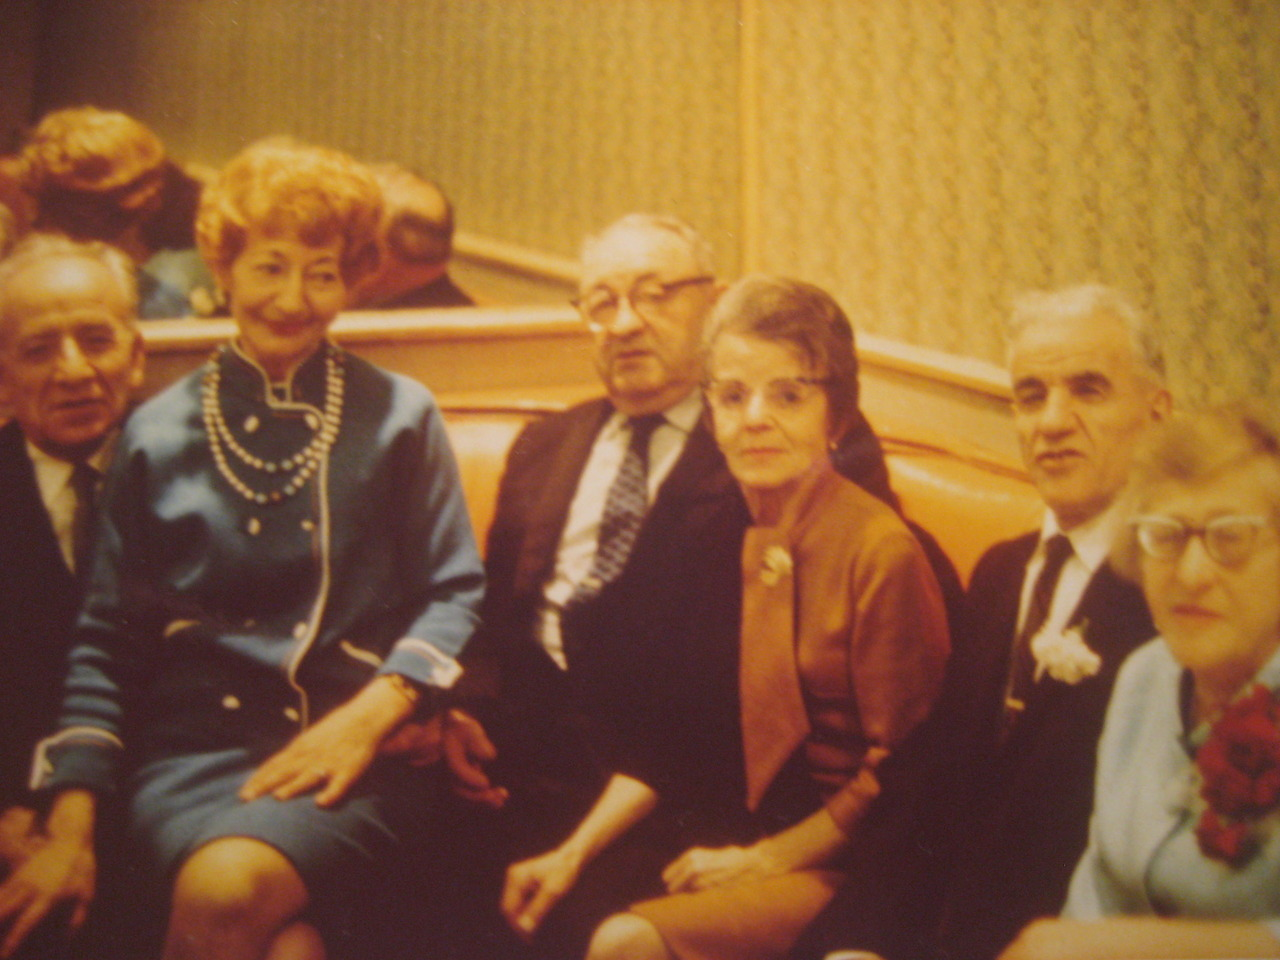 1969. At Esther's wedding.   My great grandma is the lady in red. I have no idea who Esther is, but  things are all making sense now .